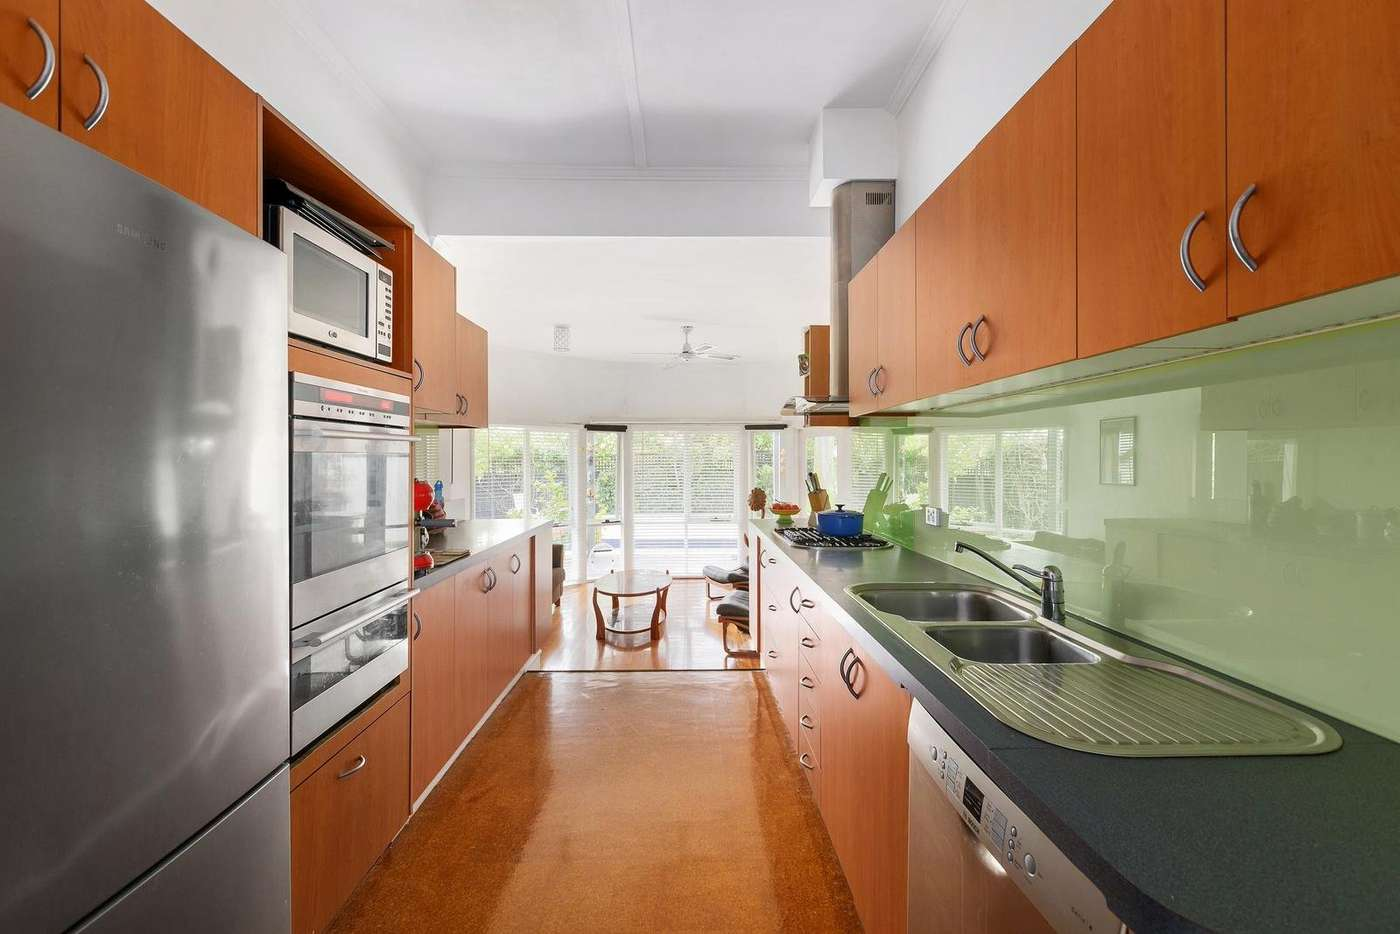 Seventh view of Homely house listing, 7 Donaldson Street, Bentleigh VIC 3204